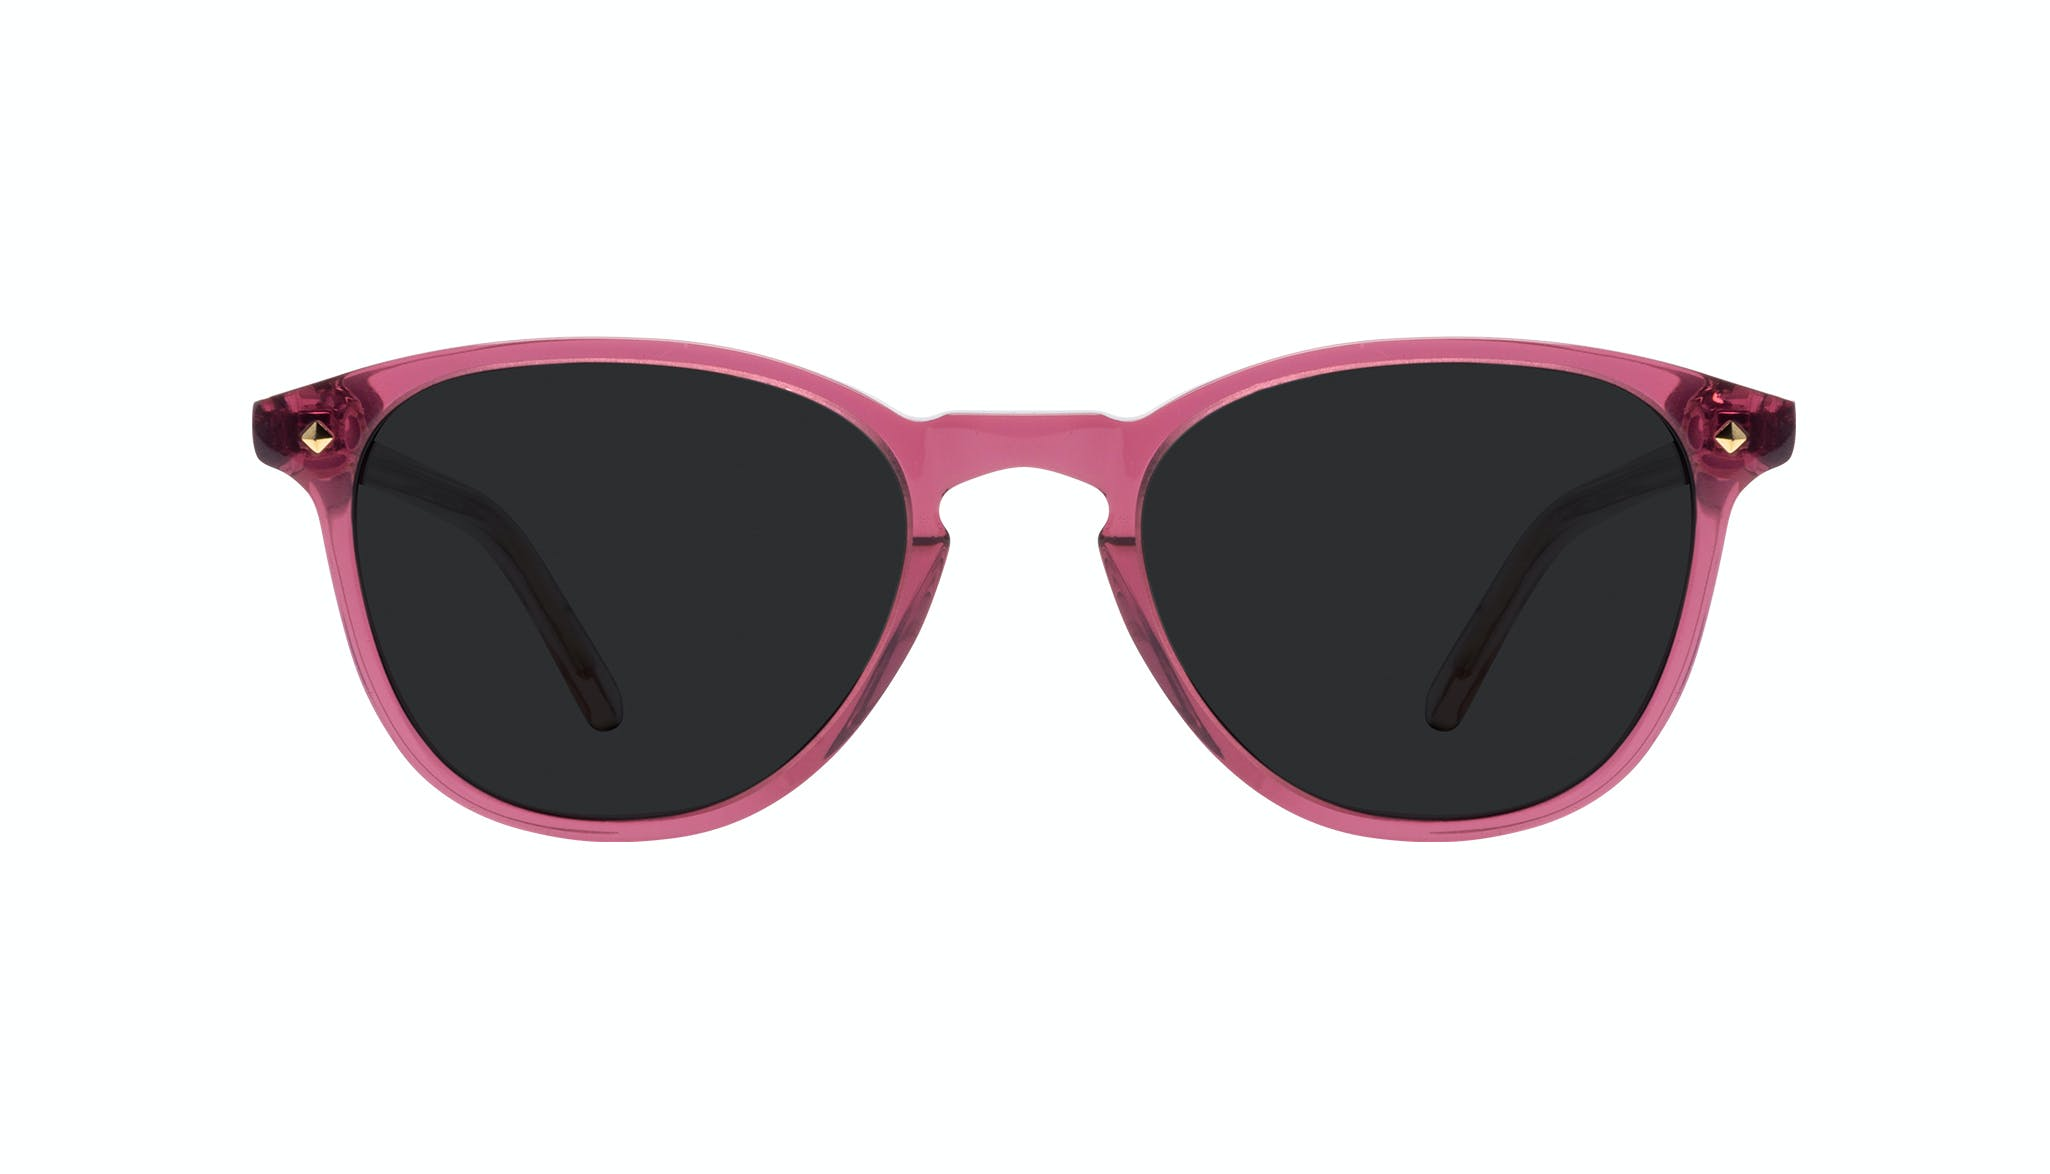 Affordable Fashion Glasses Round Sunglasses Women Crush Berry Front